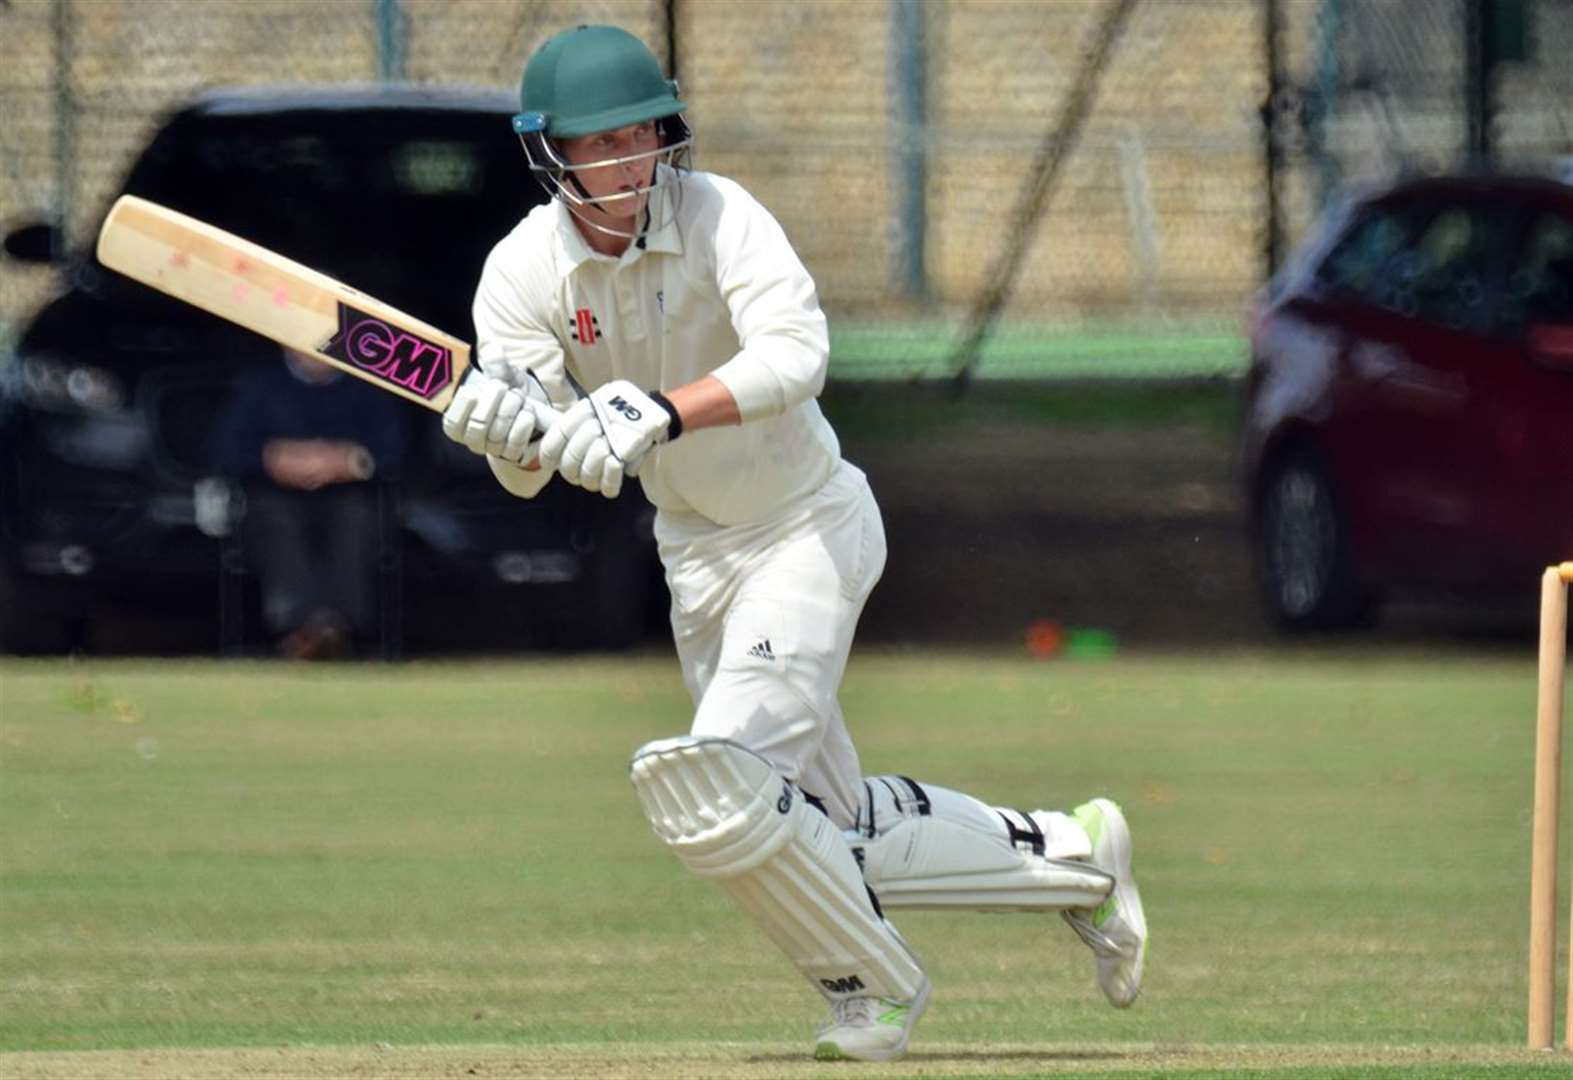 Joey jubilant after making first-class debut for Nottinghamshire